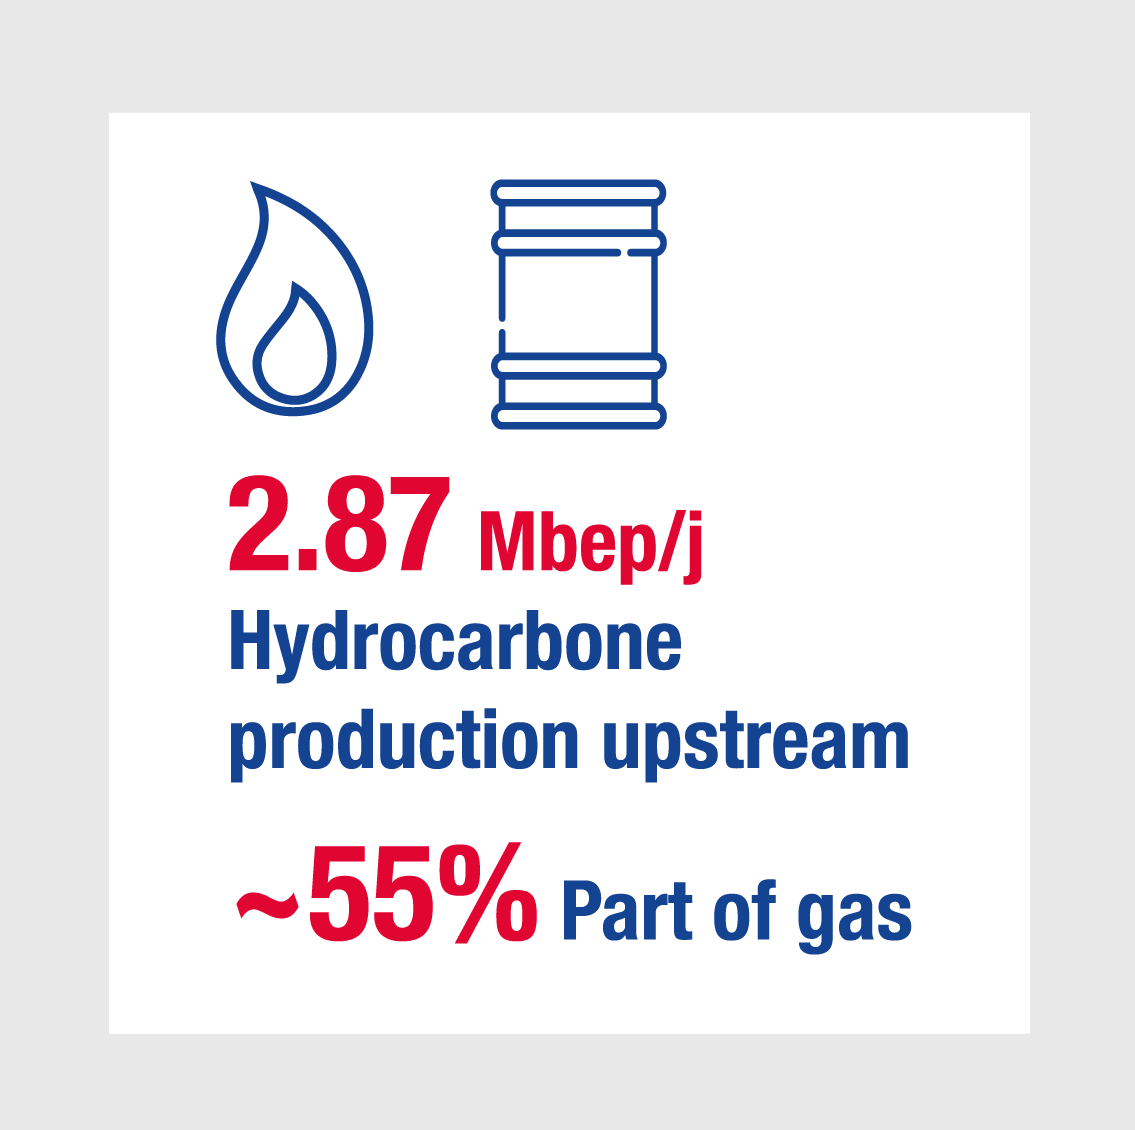 2.87 Mbep/j Hydrocarbone production upstream ~55% Part of gas